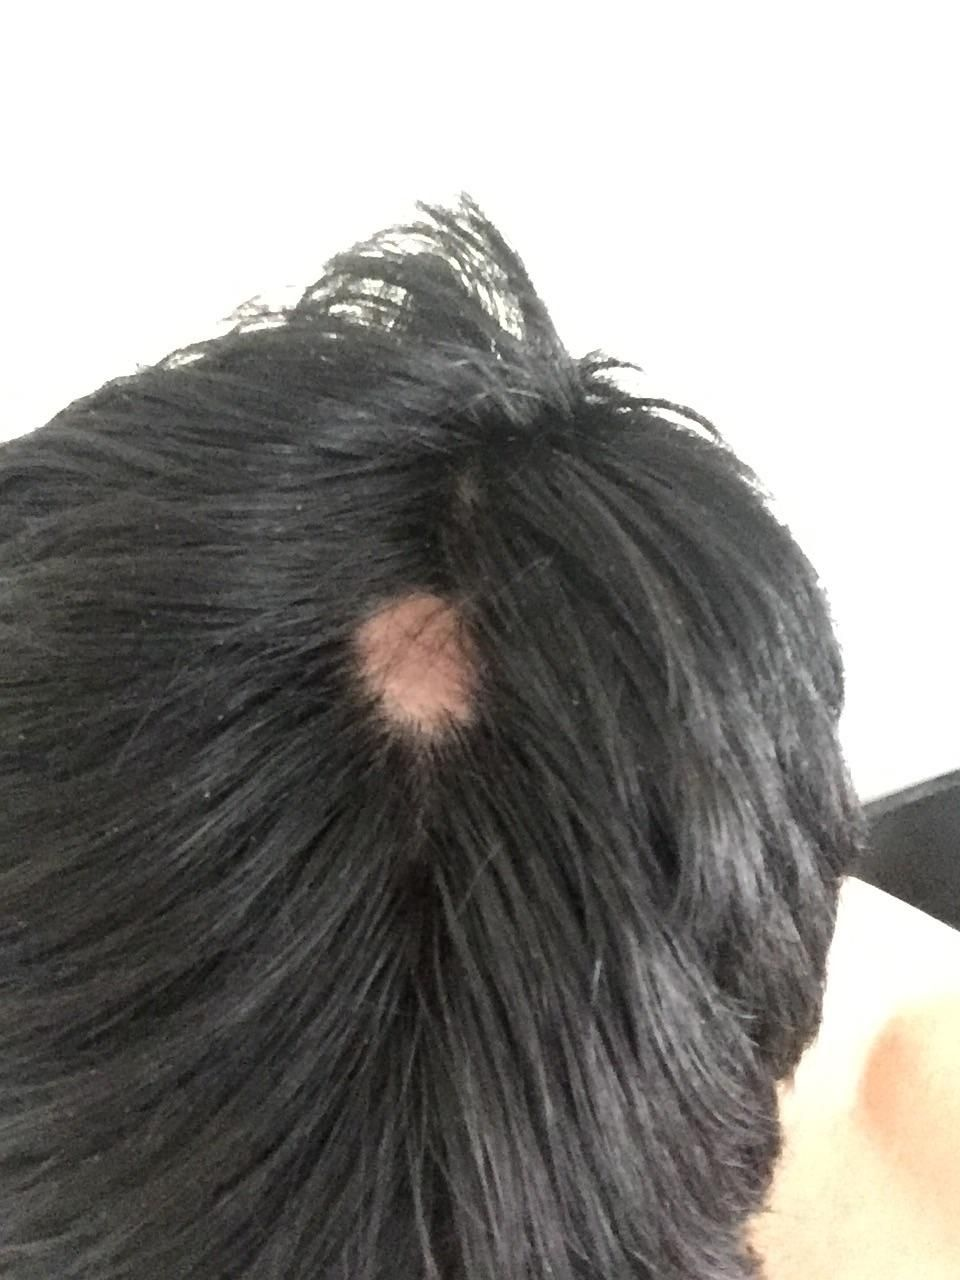 I Have A Bald Spot Appearing On My Head No One In My Genetics Is Susceptible To Baldness So Im Kind Of Freaking Out Can Th Bald Spot Bald Spots Women